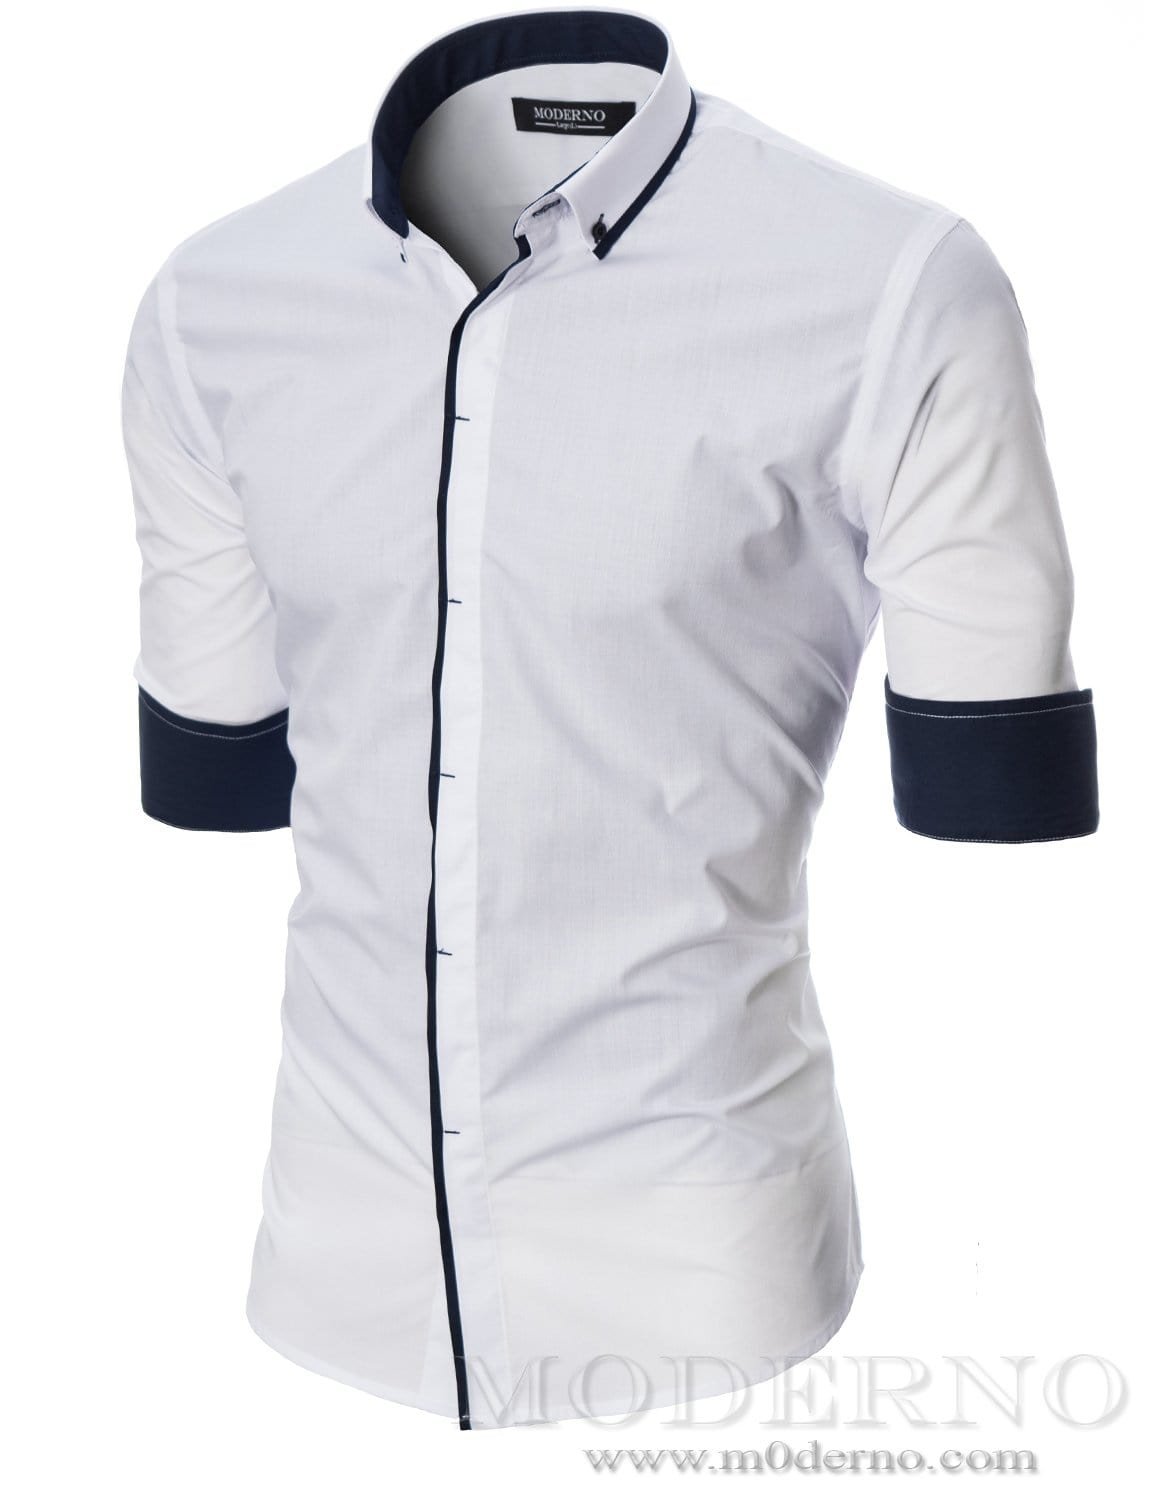 Mens button-down shirt white (MOD1445LS) - MODERNO